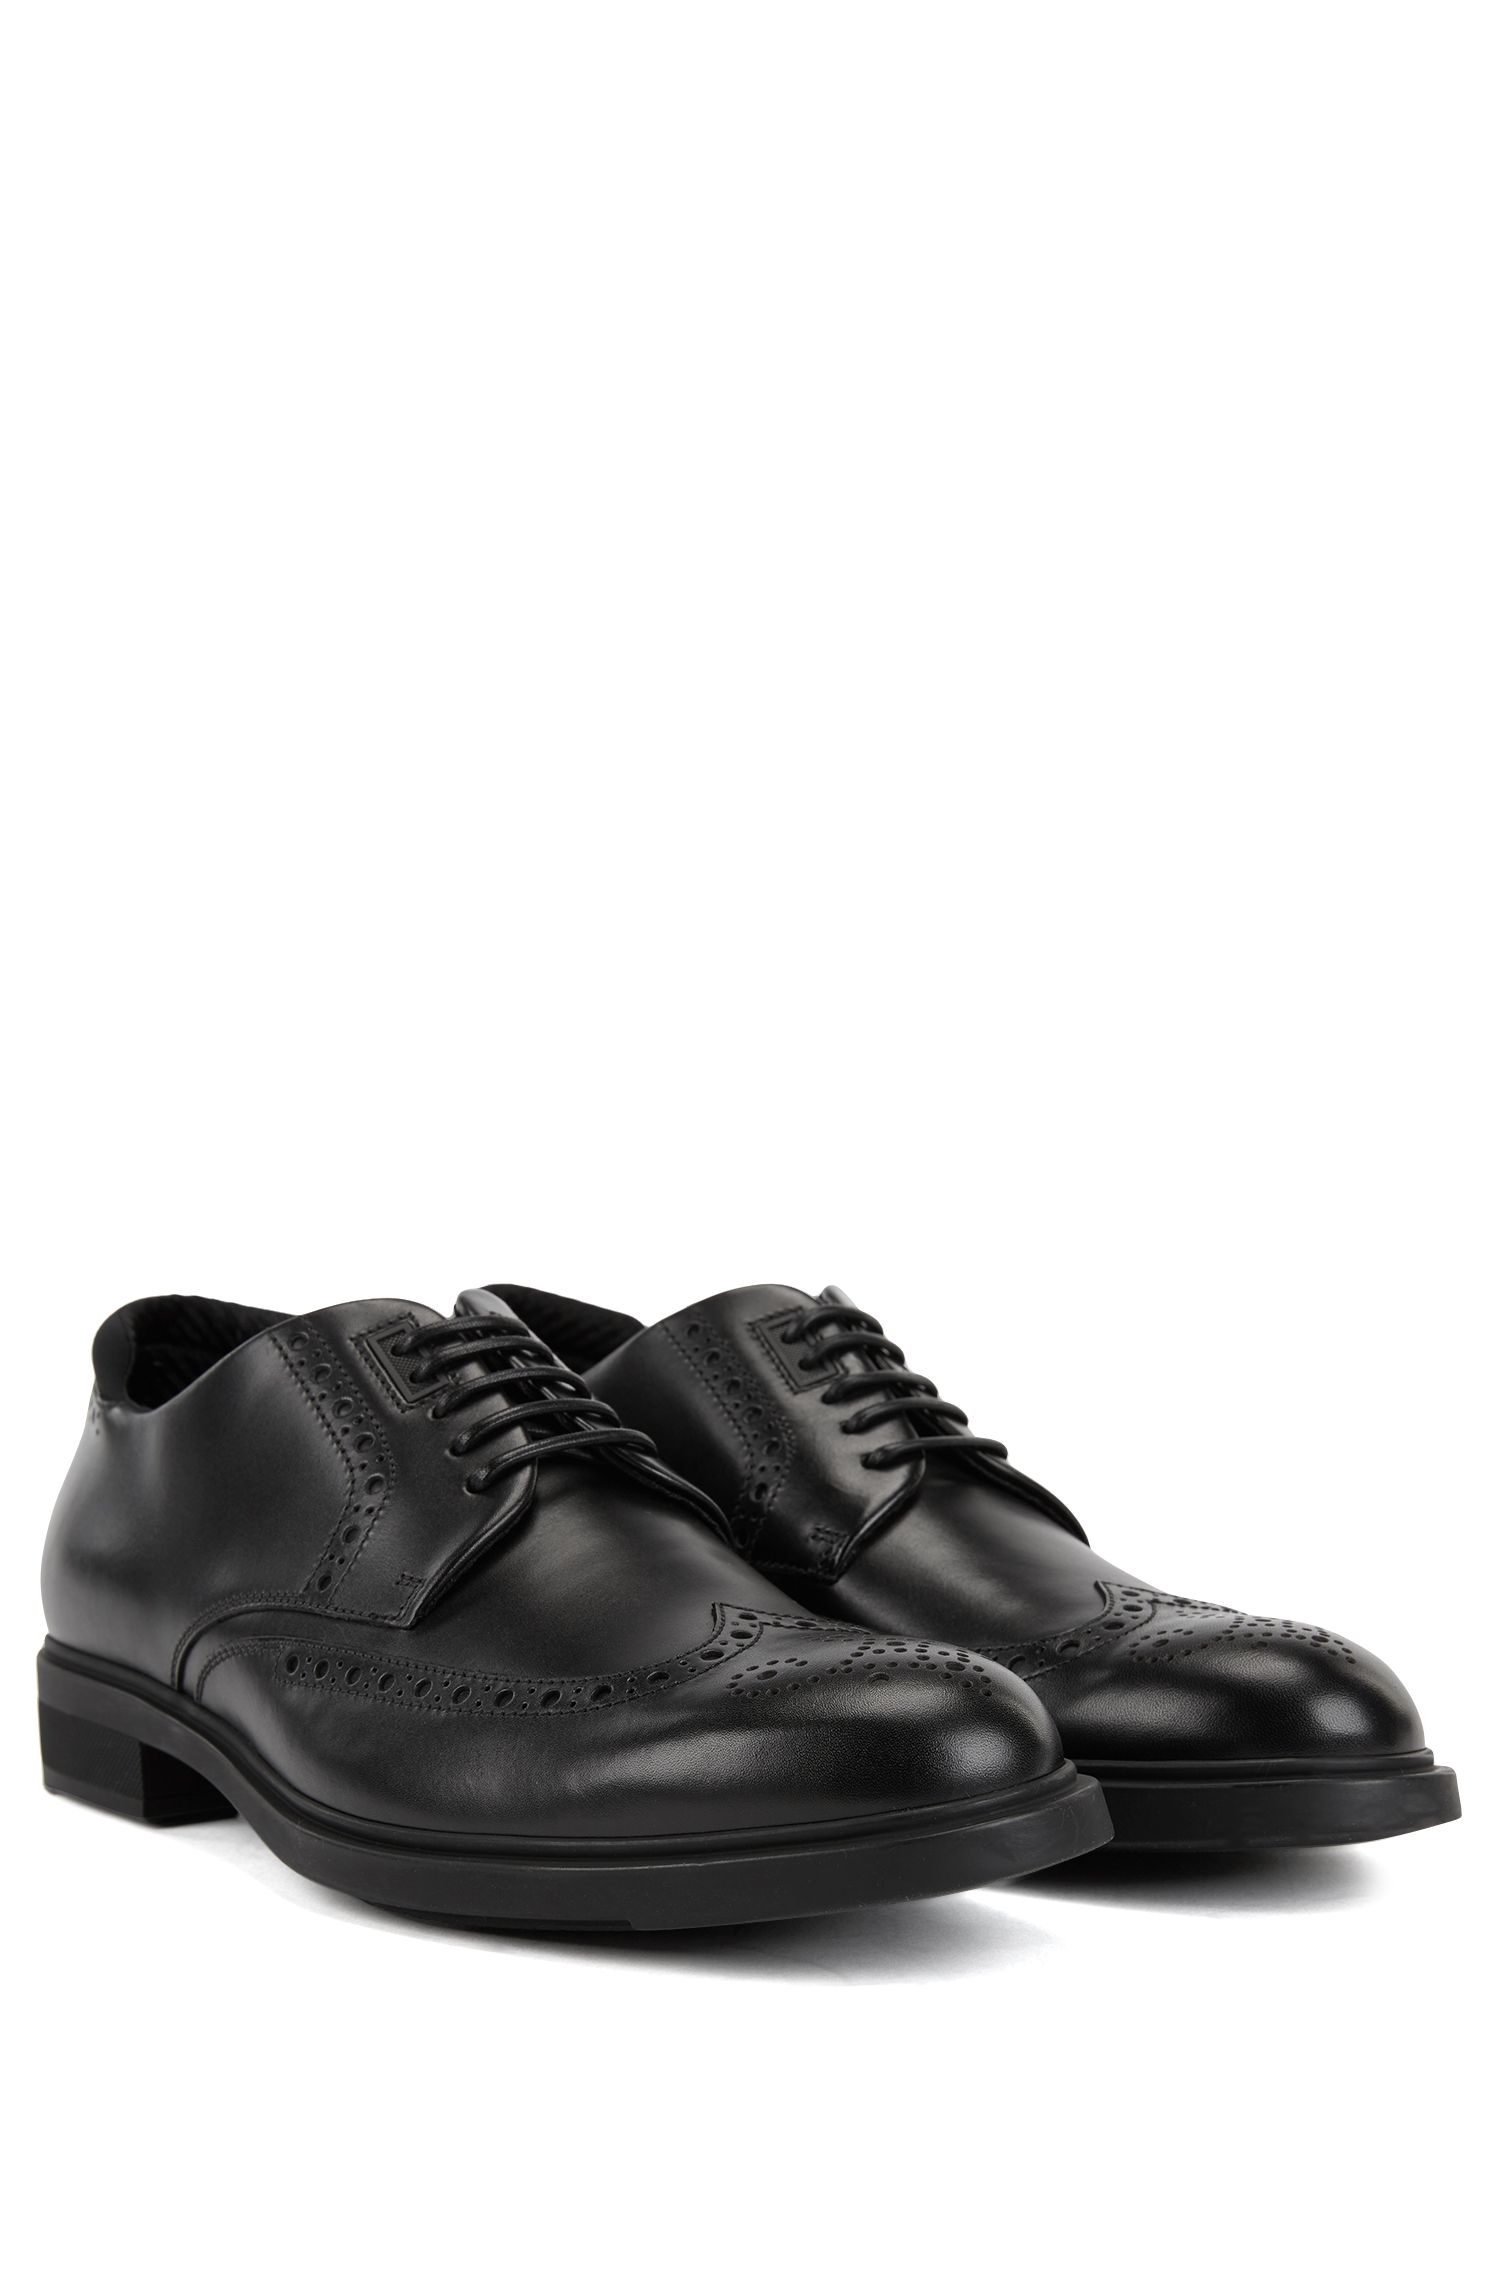 Hugo Boss - Calf-leather Derby brogue shoes with Outlast® lining - 2